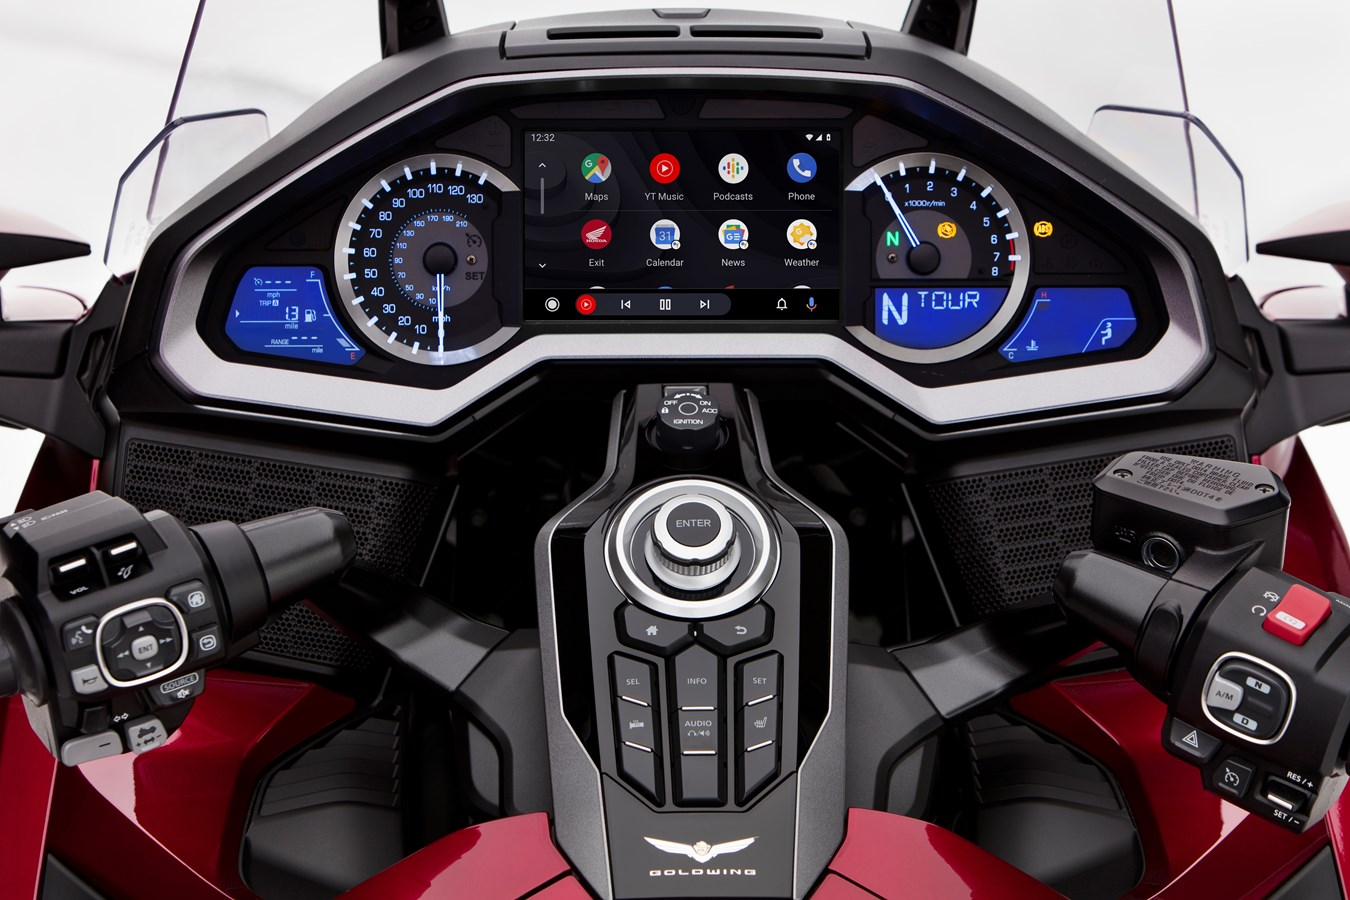 Honda Announces Android Auto Integration for Gold Wing Series